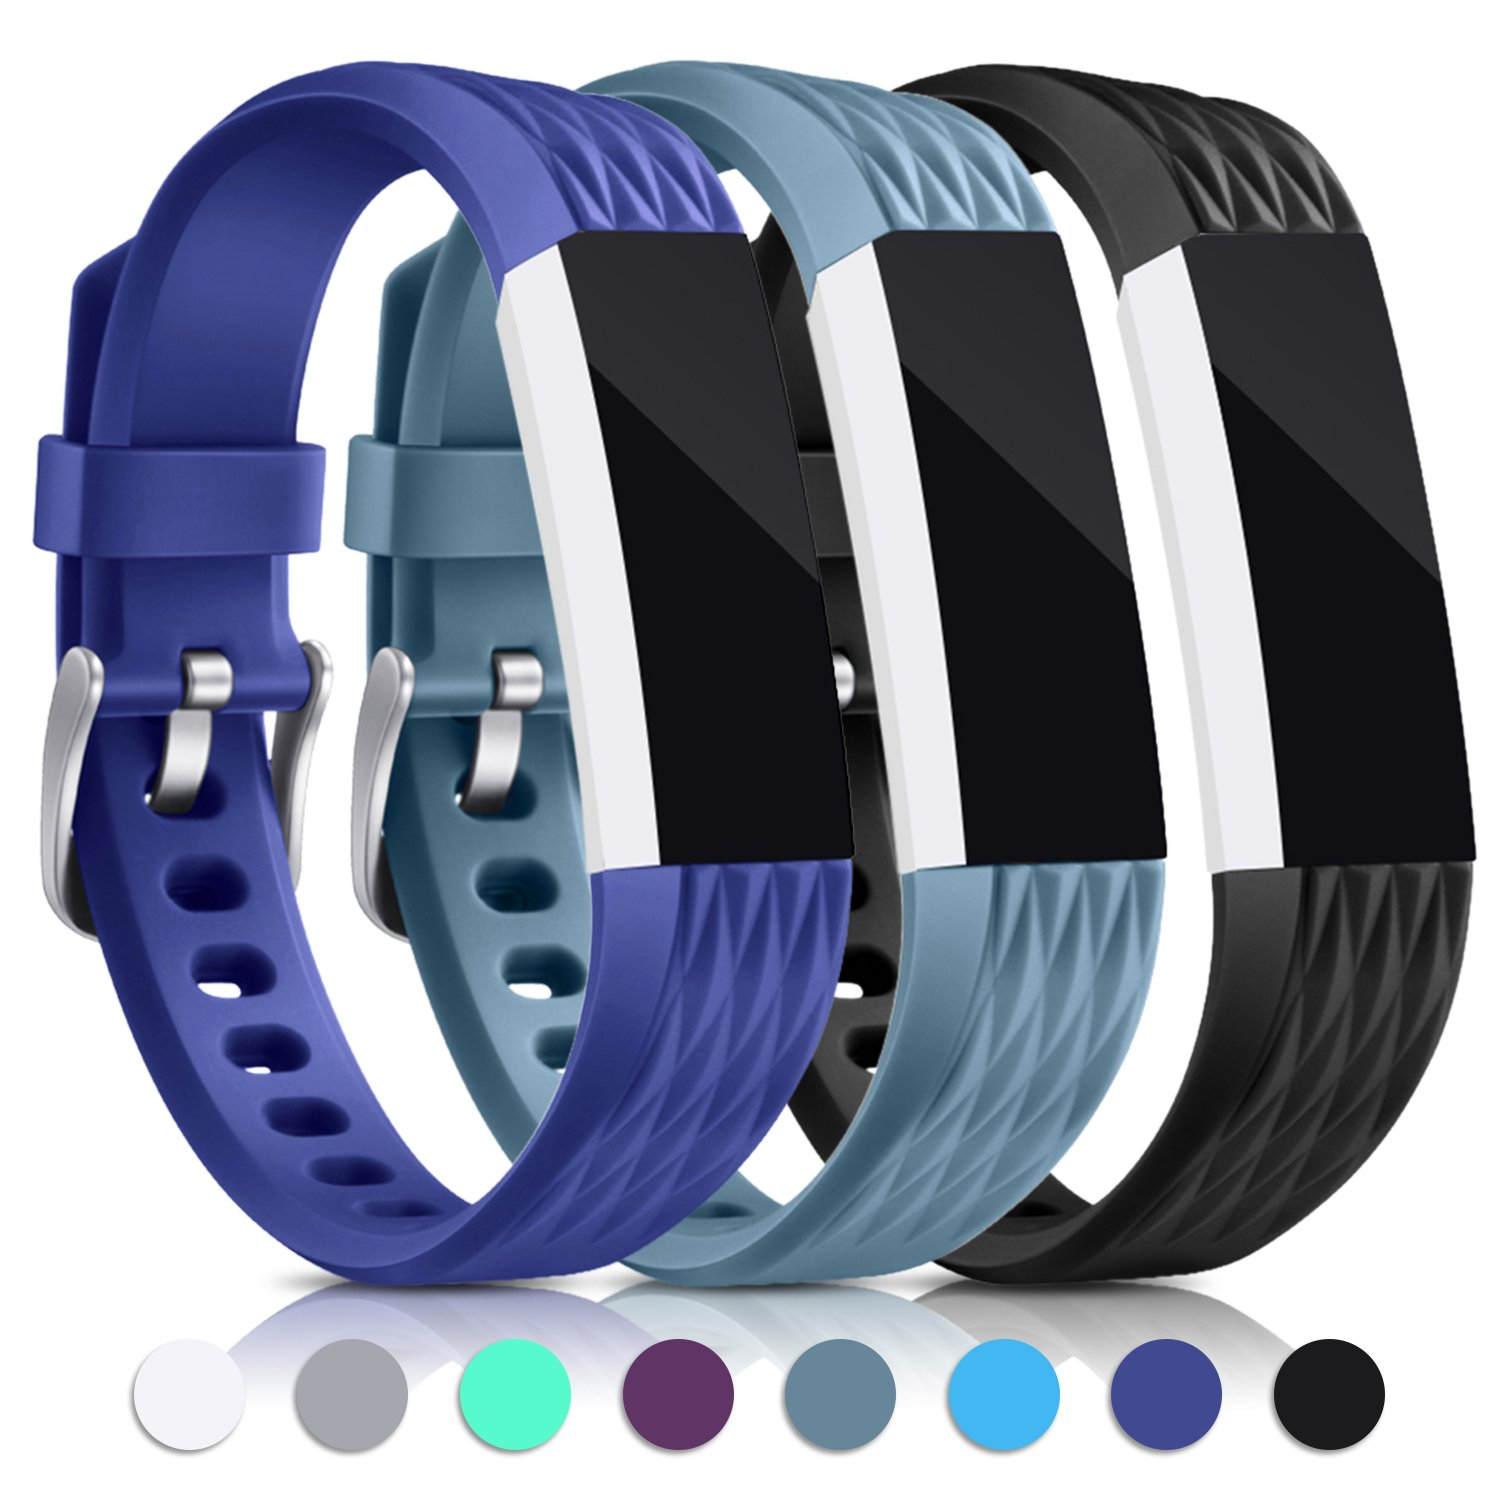 Fitbit Konikit Adjustable Replacement Accessory Image 1